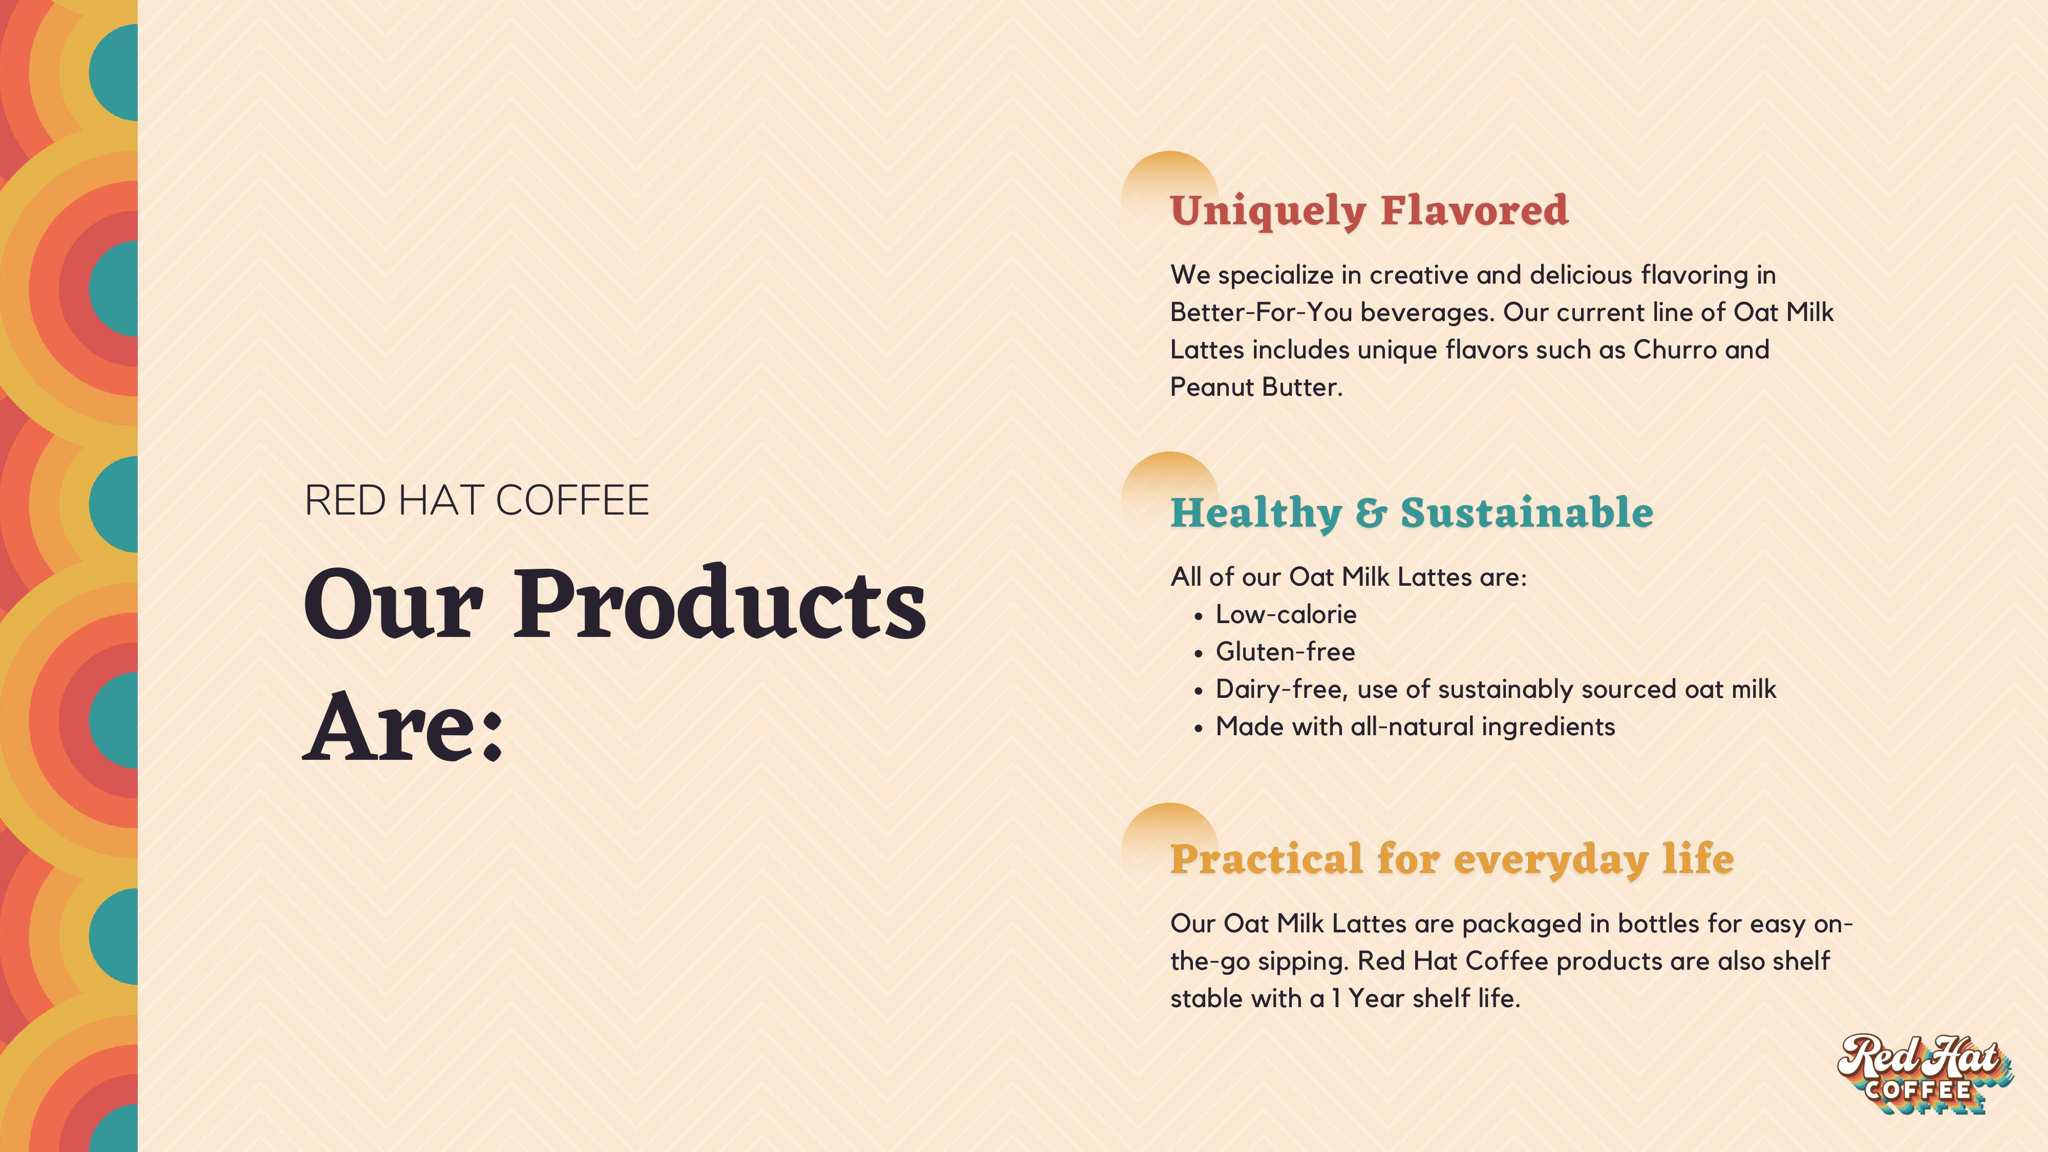 We create uniquely-flavored, healthy, sustainable and practical coffee products.